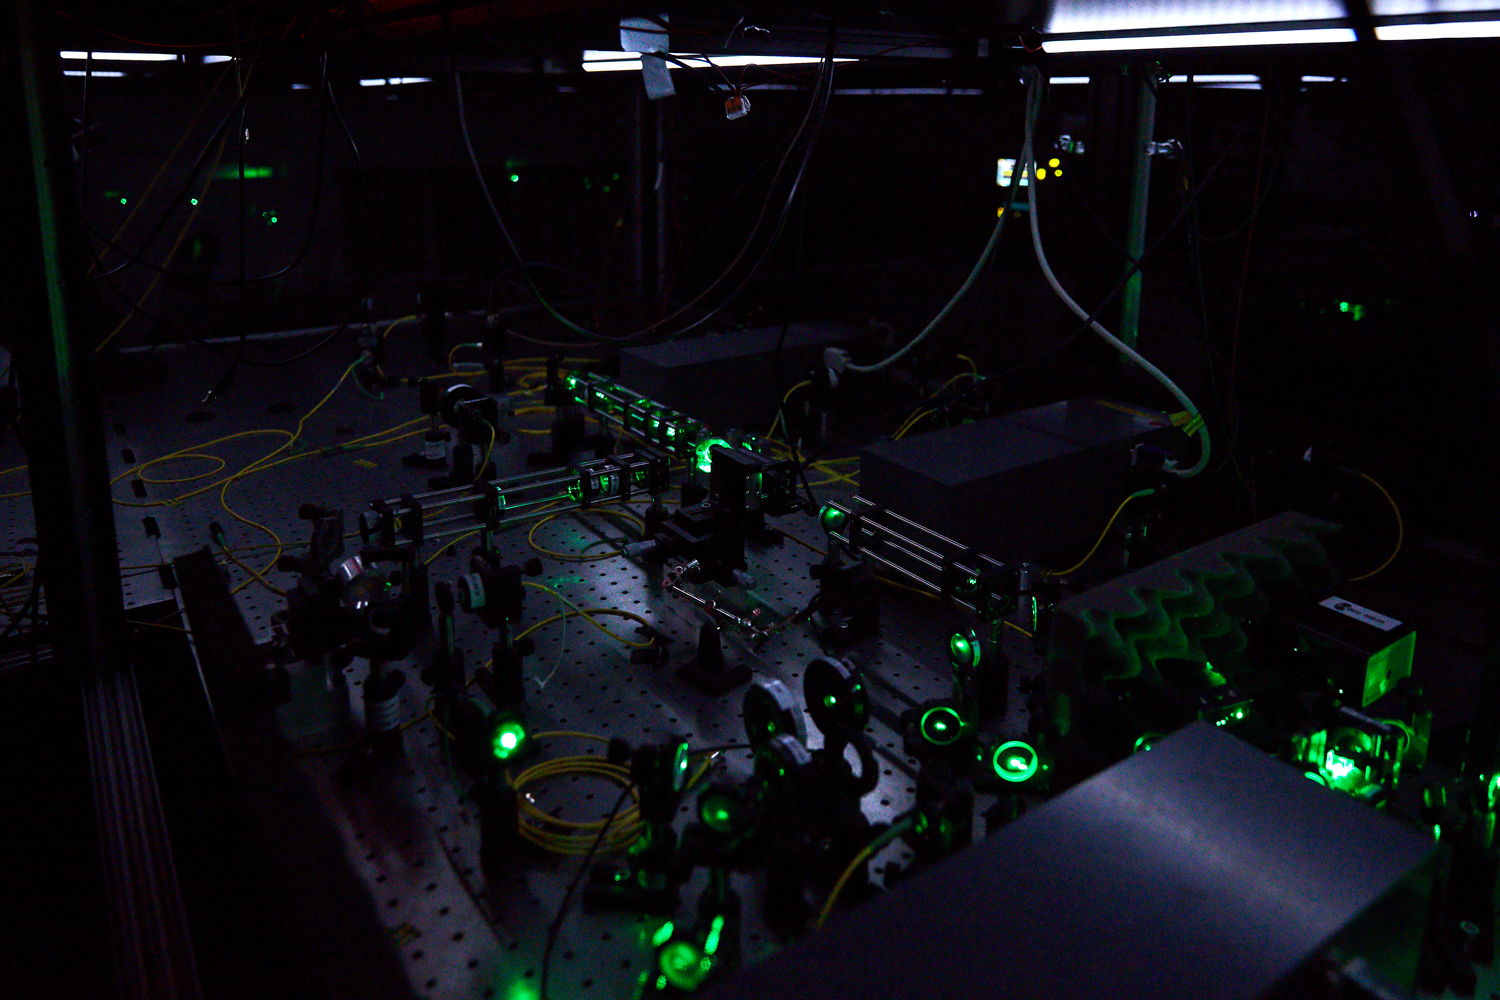 Equipment and optical tables in a laboratory at Delft University of Technology that houses a special crystal capable of storing quantum memory and serving as a network node for long-distance quantum communication.